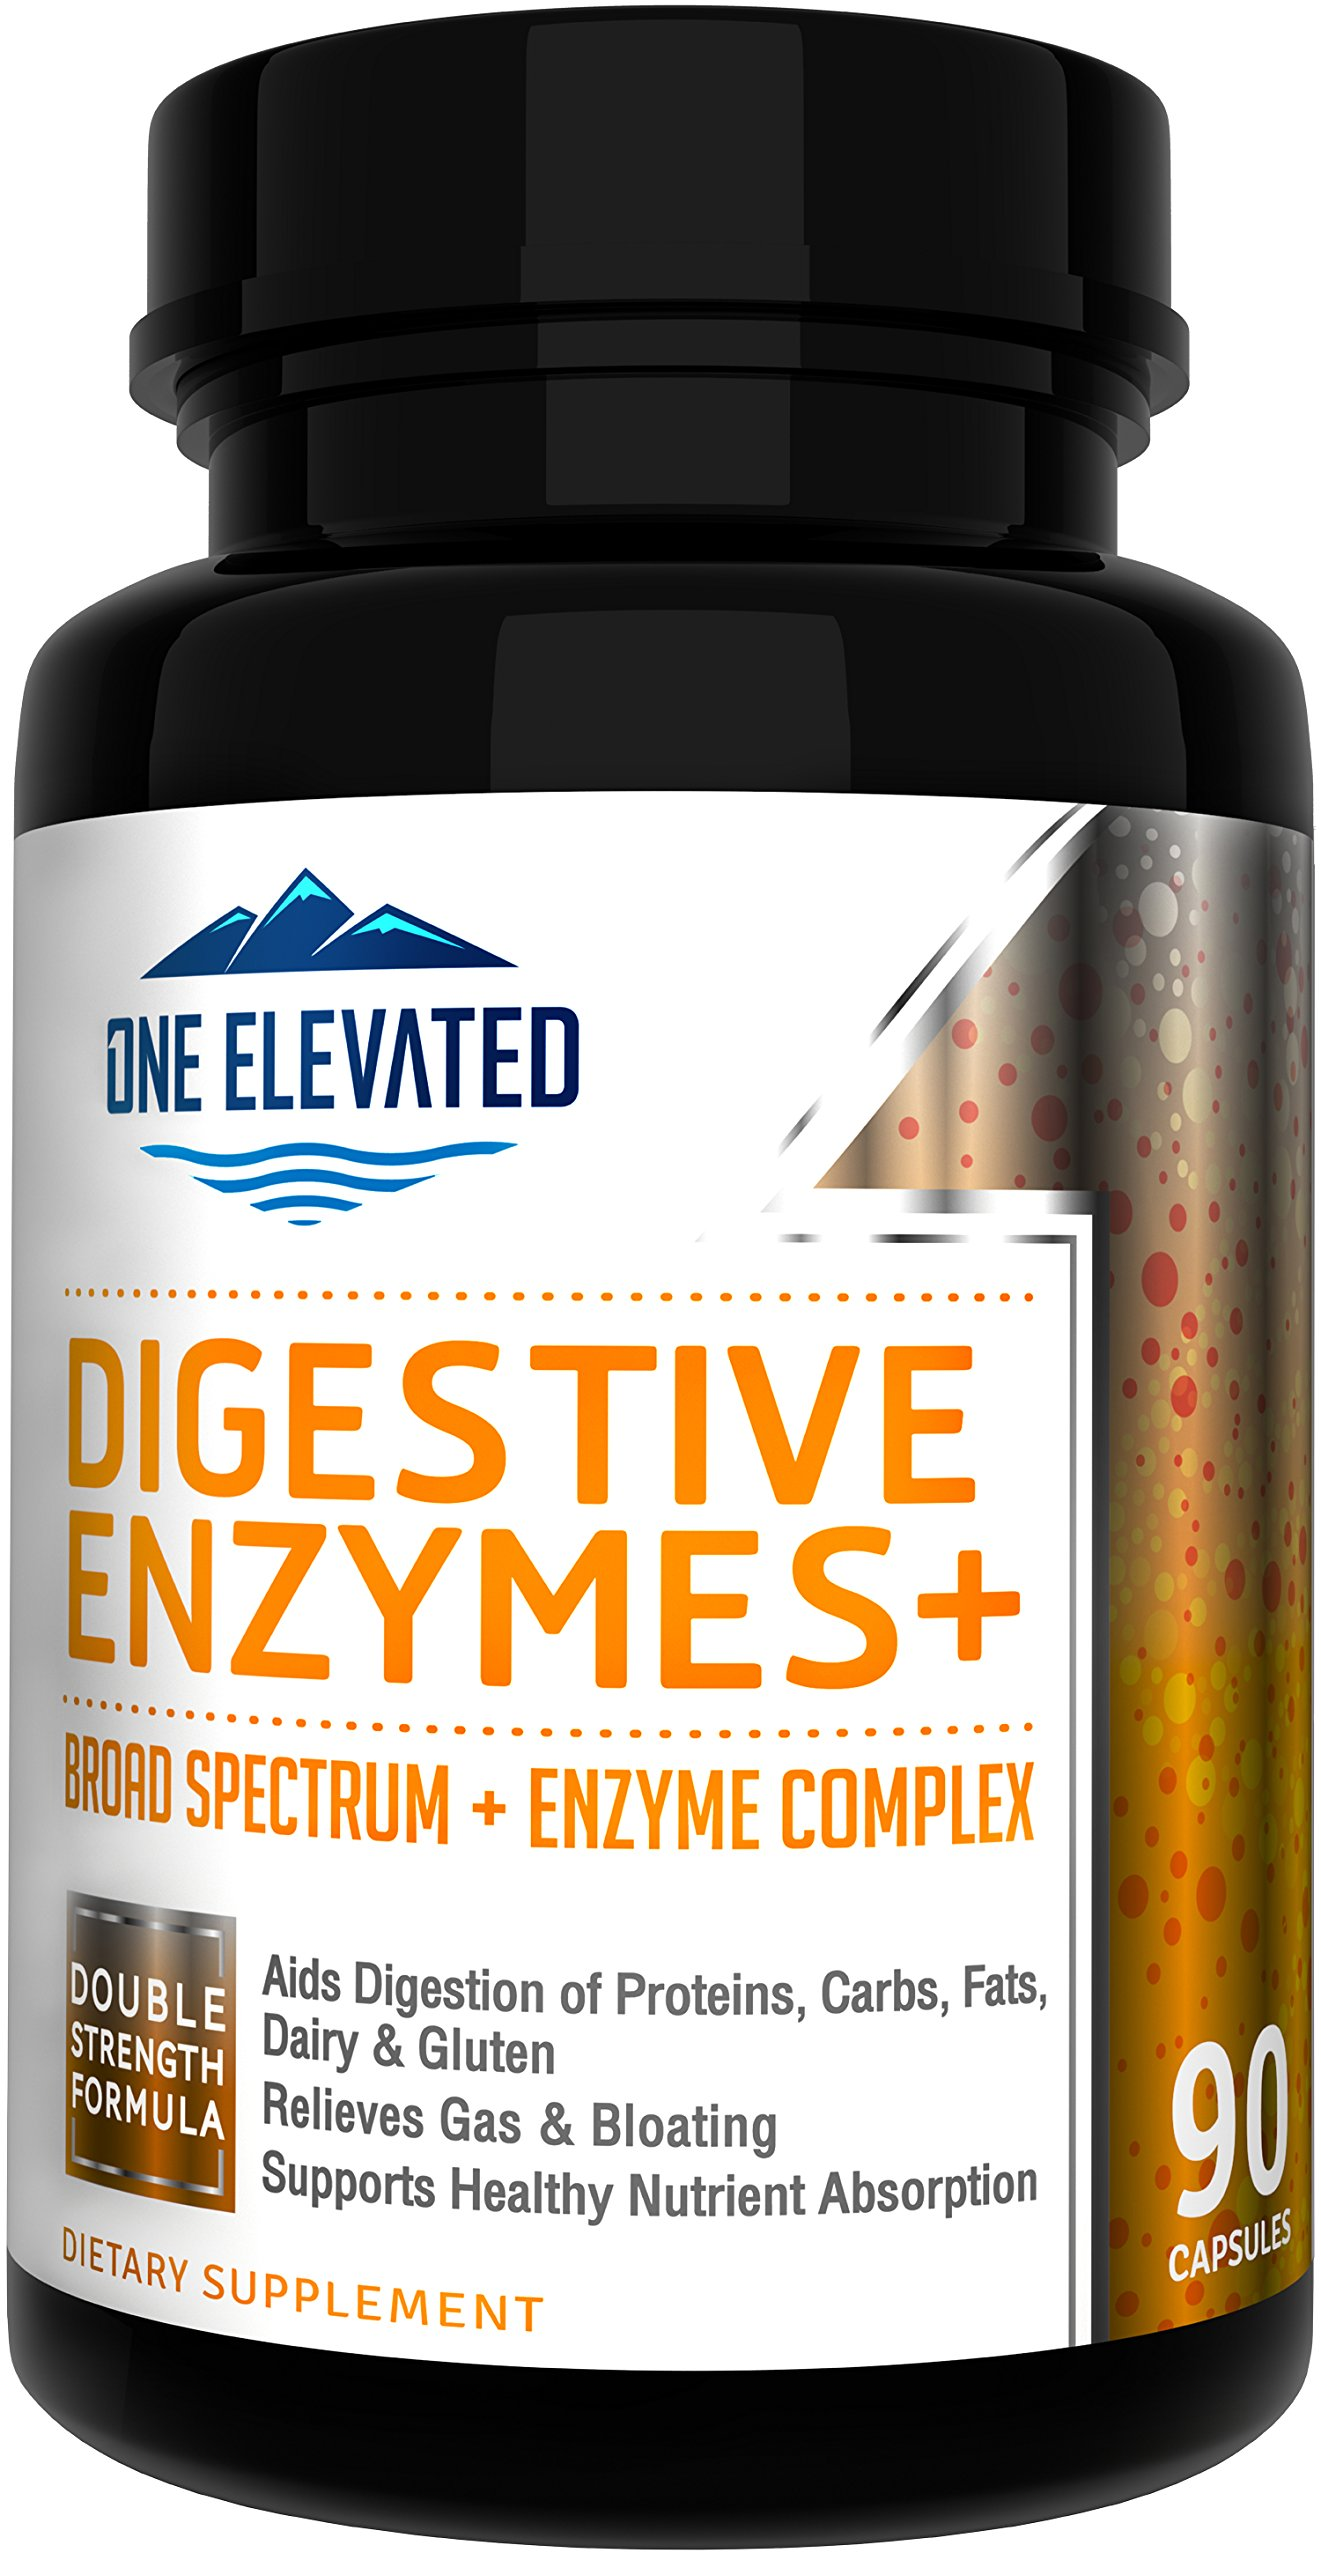 Full Spectrum & Highest Grade Digestive Enzymes Supplements. Double Potency Formula Ensuring Highest Enzymes Activity Level Delivery. Digest All Food Groups, Gluten & Lactose for Broad PH Setting.